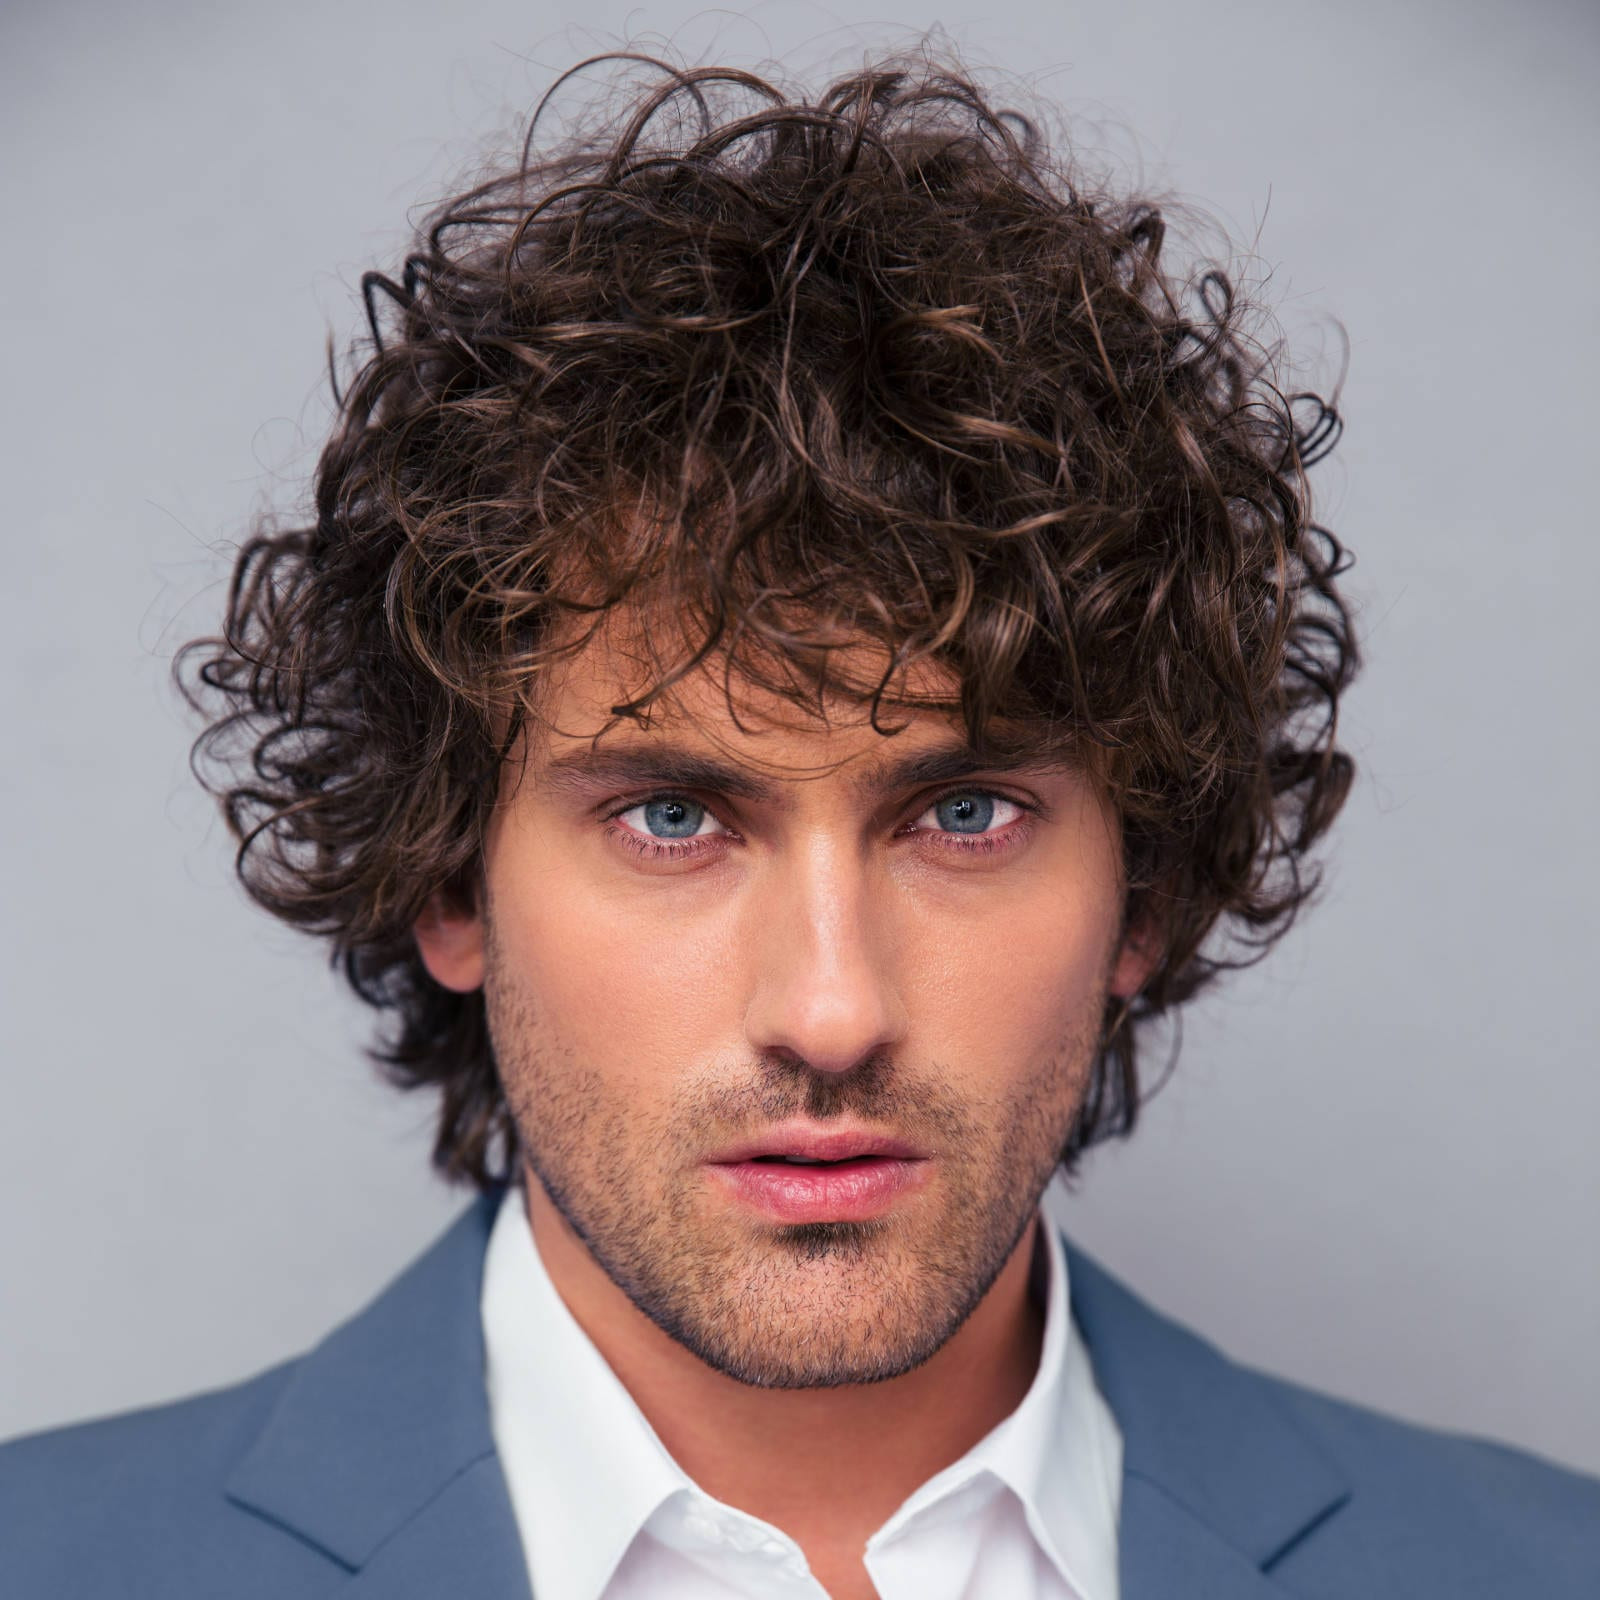 Best ideas about Mens Haircuts For Curly Hair . Save or Pin 40 Modern Men s Hairstyles for Curly Hair That Will Now.